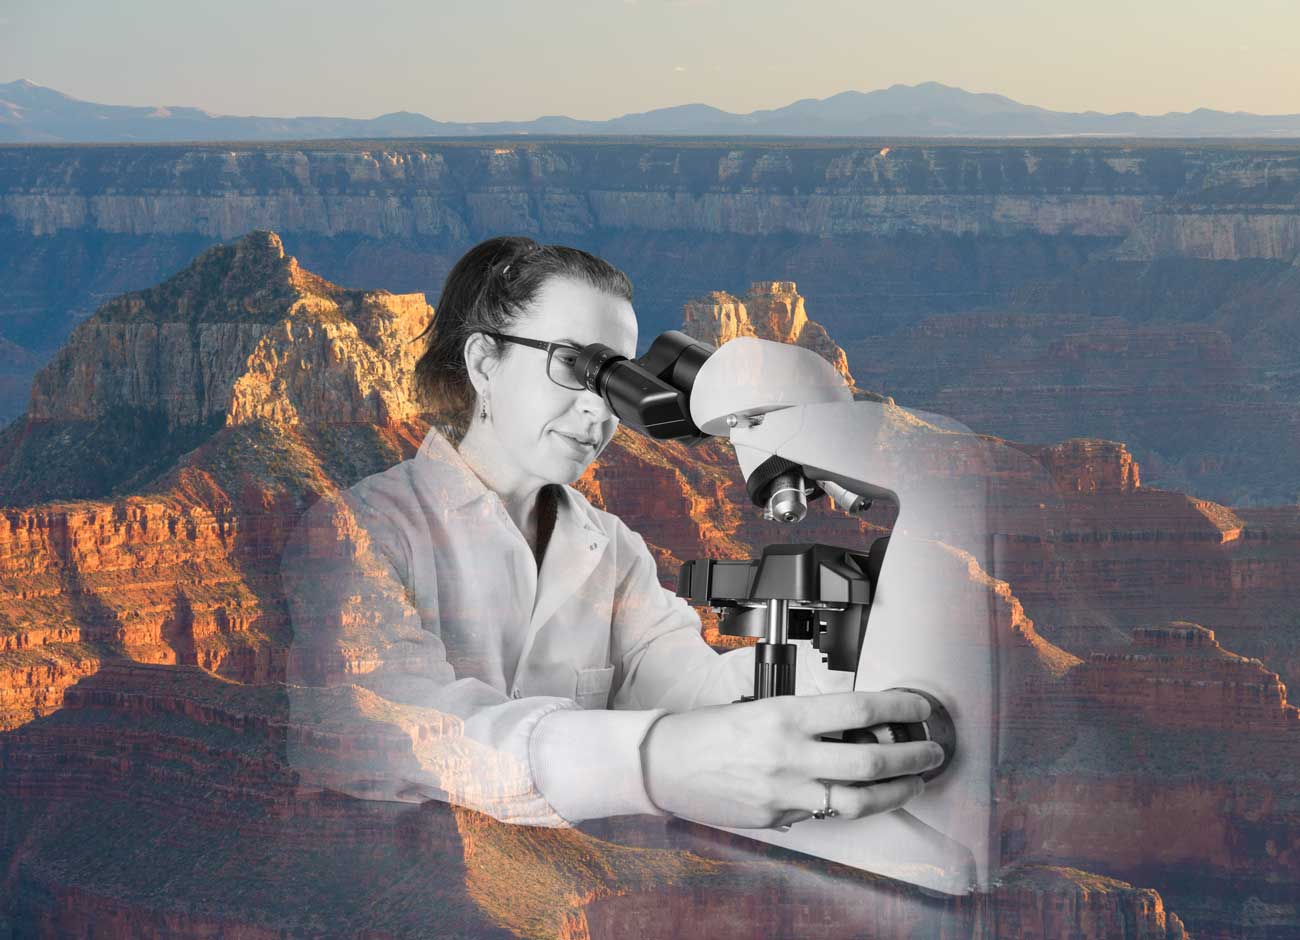 a woman scientist looks through a microscope overlayed with an image of the grand canyon